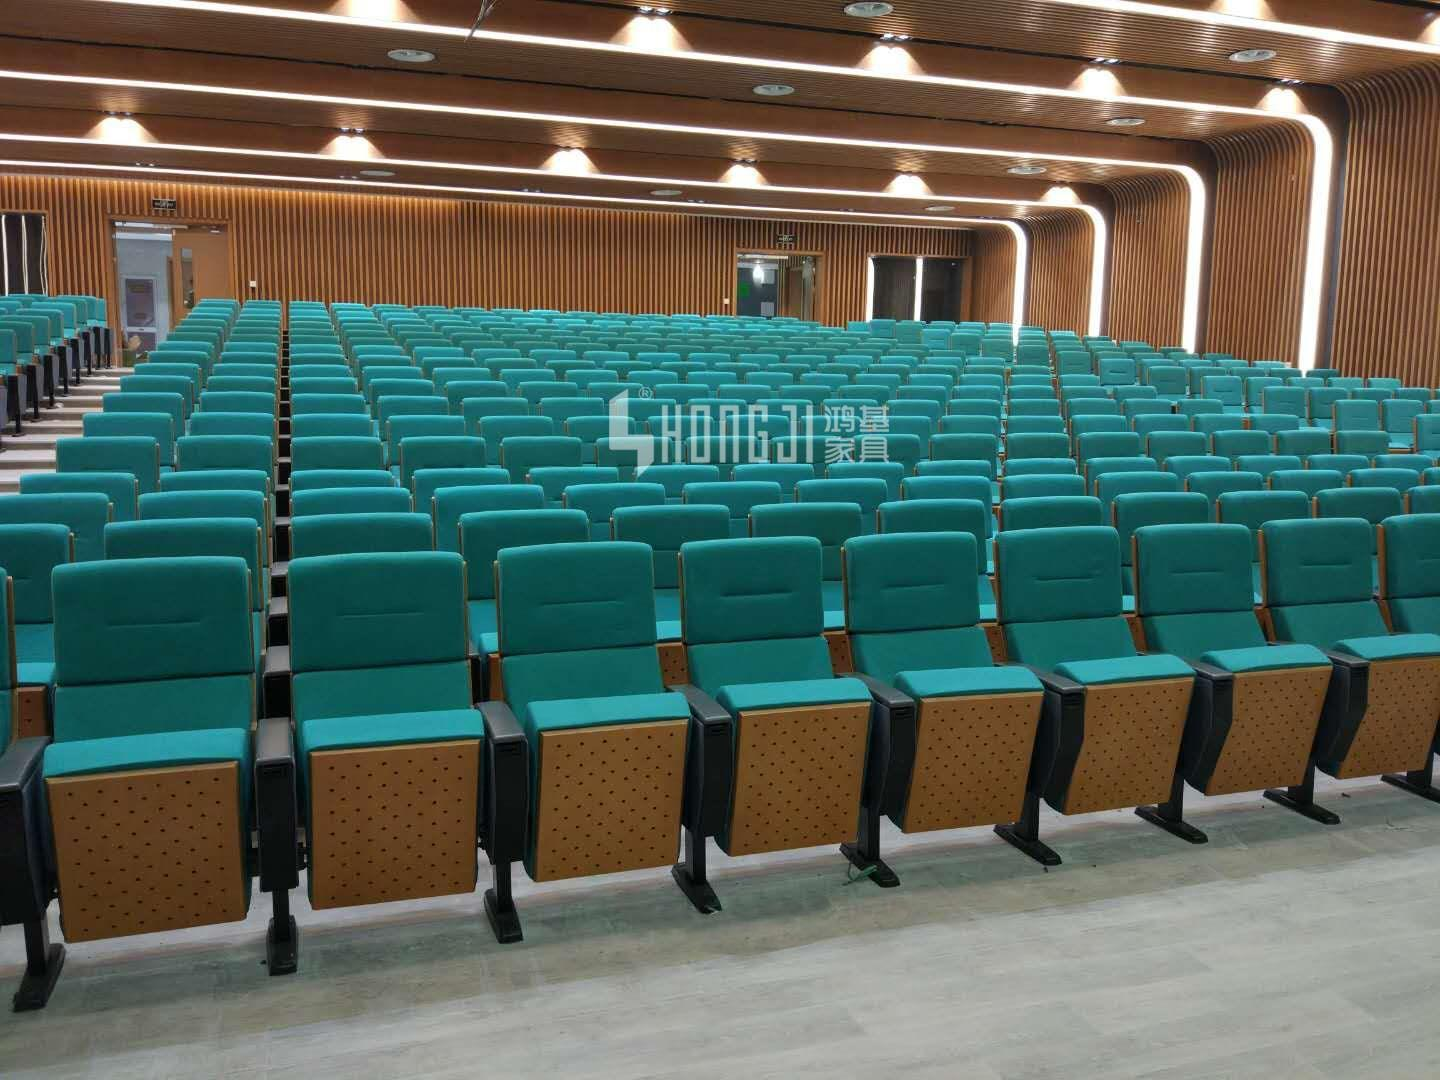 HONGJI project lecture hall seating with classroom